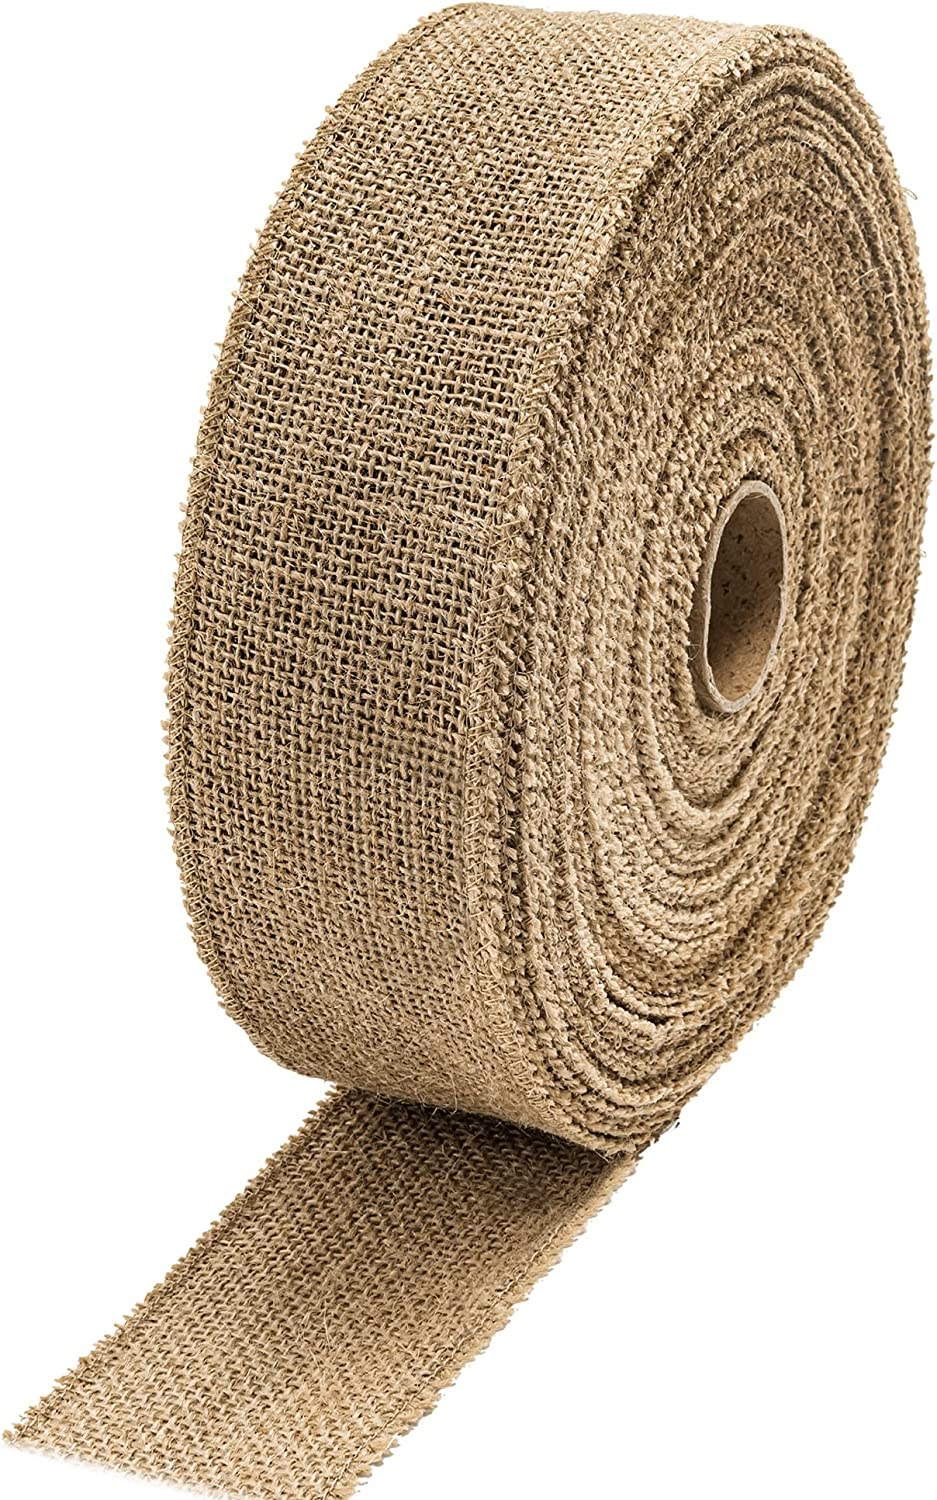 iPEGTOP 30 Mail order Yards Burlap Gorgeous Ribbon Roll Inch Wide 2 2-1 Ju Natural